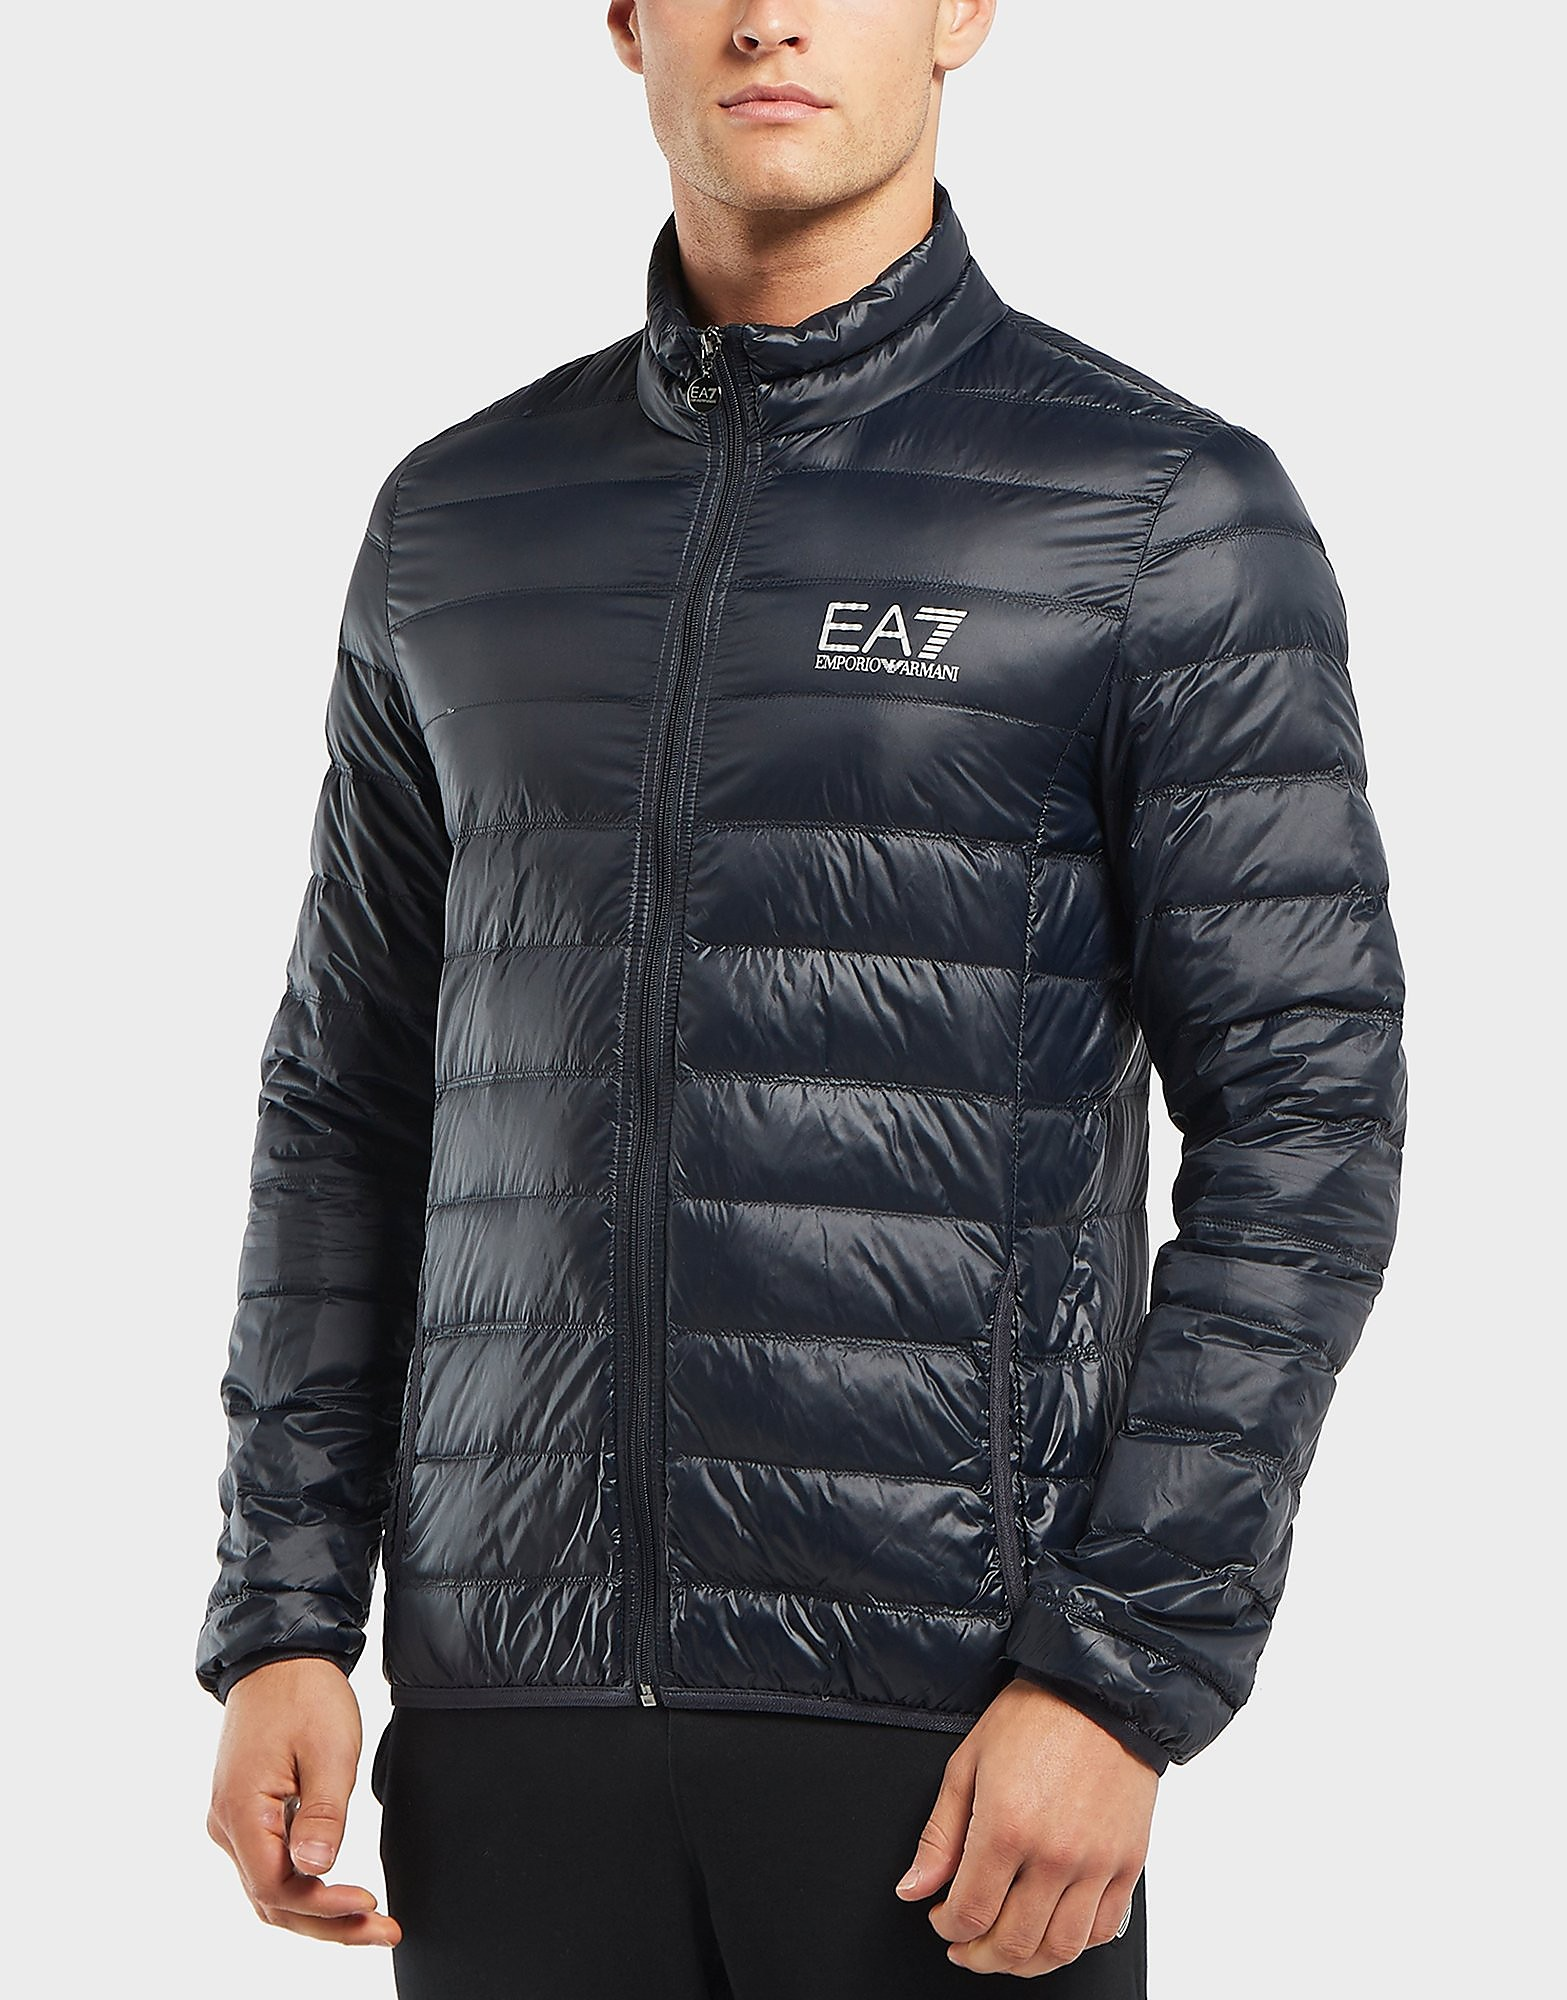 Emporio Armani EA7 Core Bubble Jacket